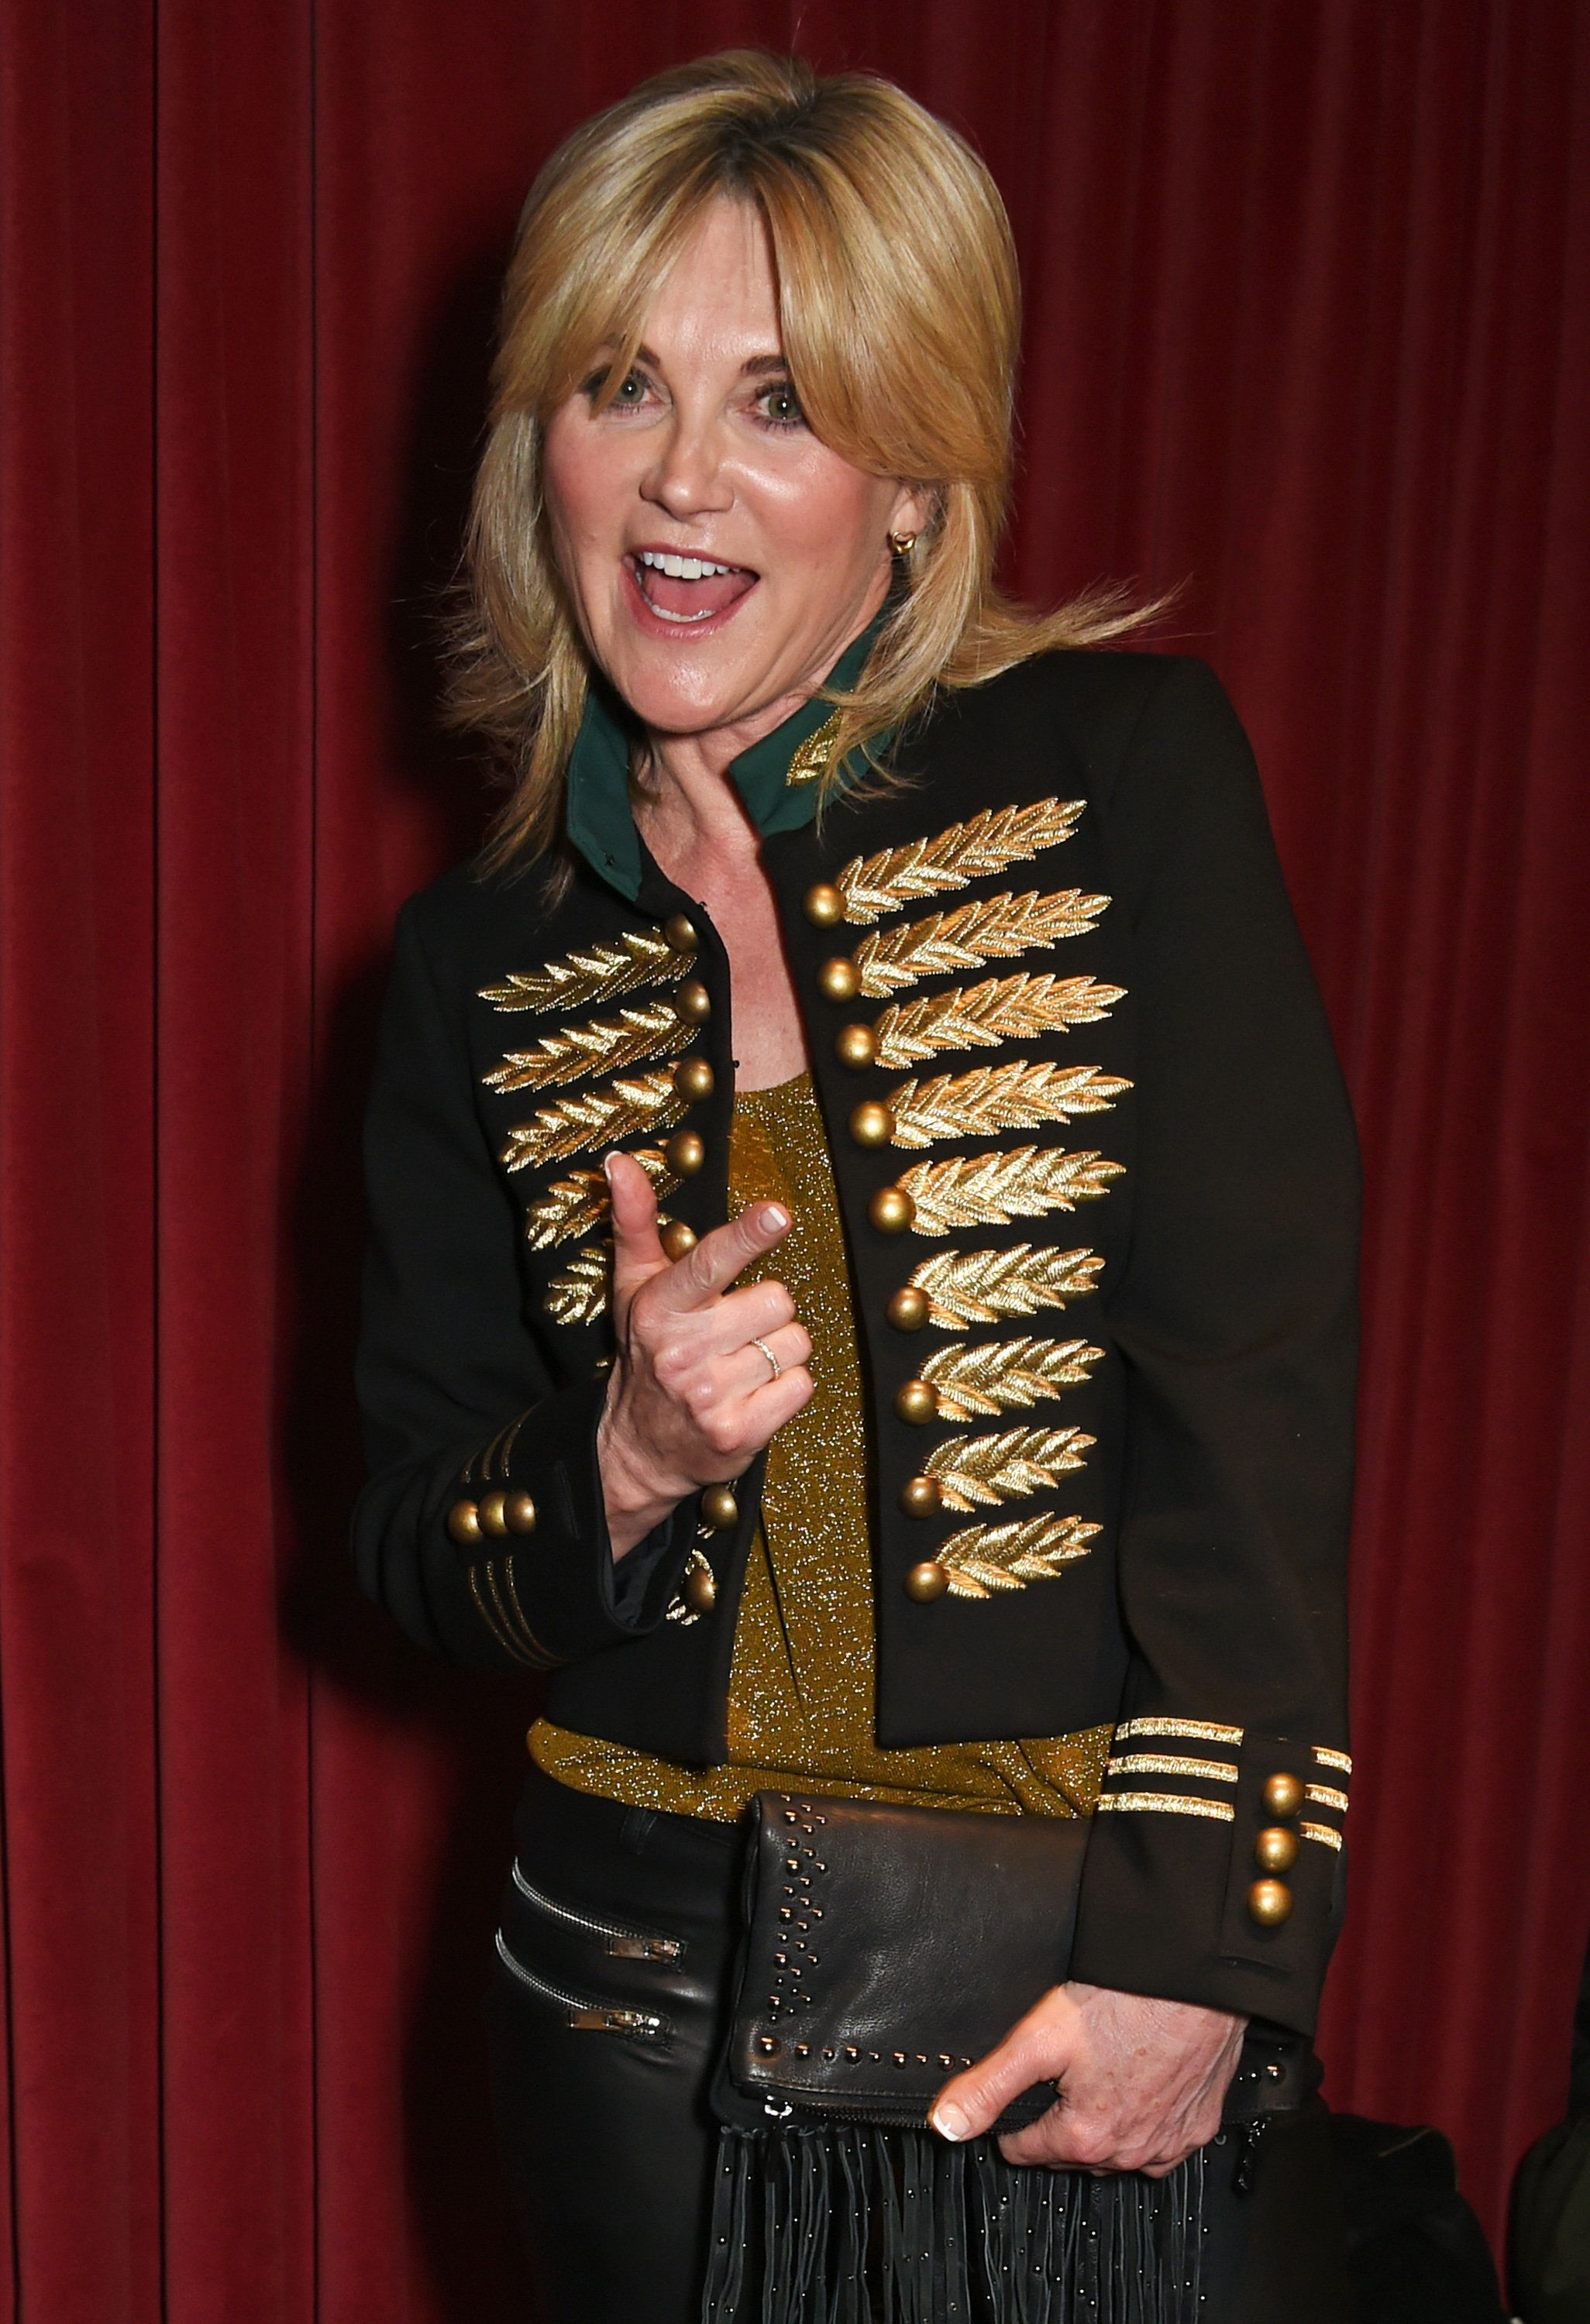 Anthea Turner's Comments About Having Sex In Your 50s Are Utterly